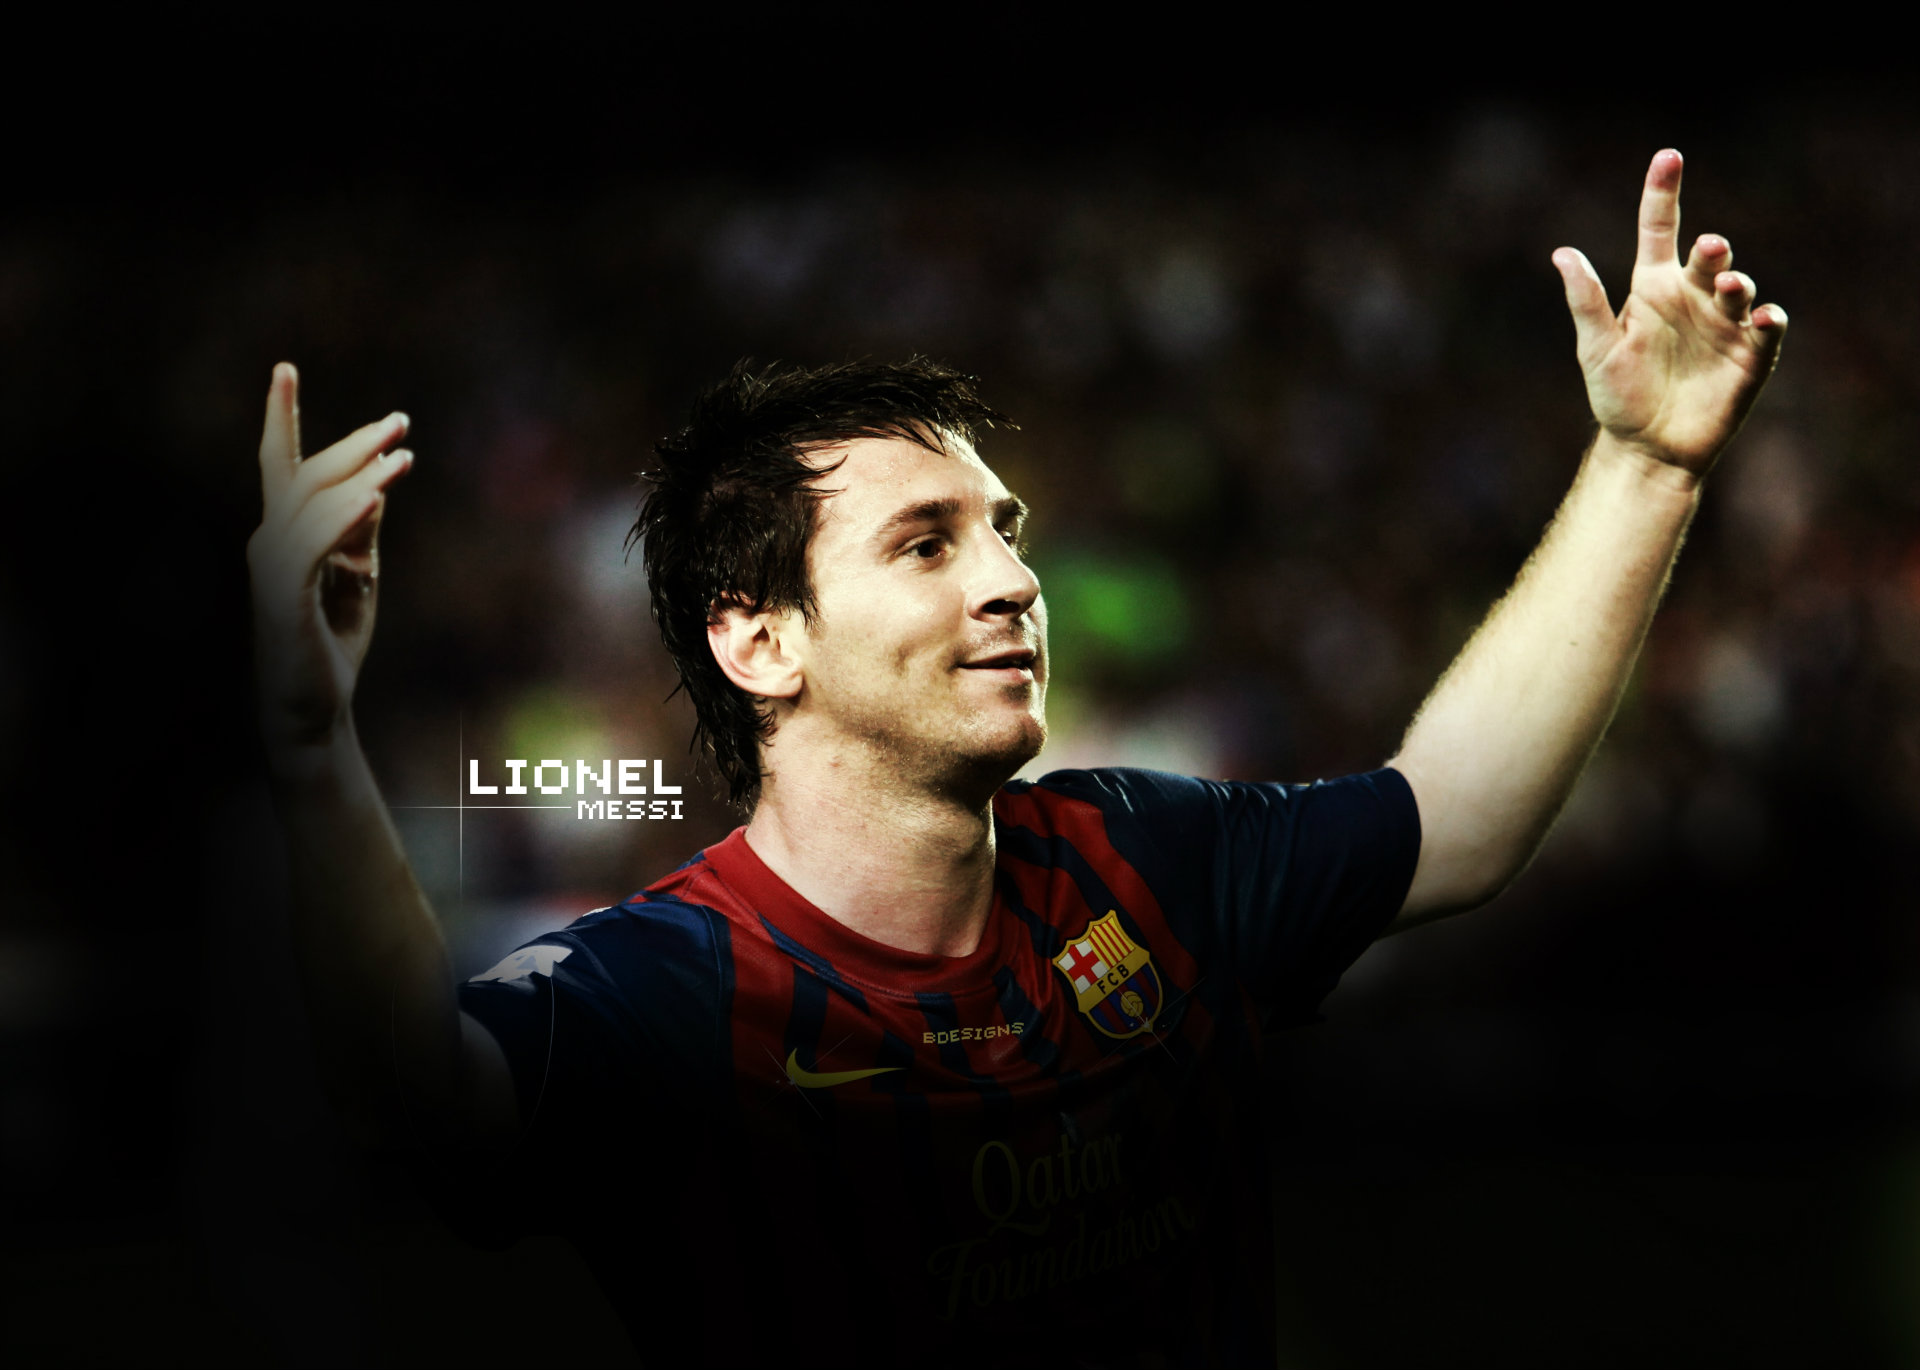 Download Lionel Messi 2016 Wallpaper Most HD Wallpapers 1920x1370